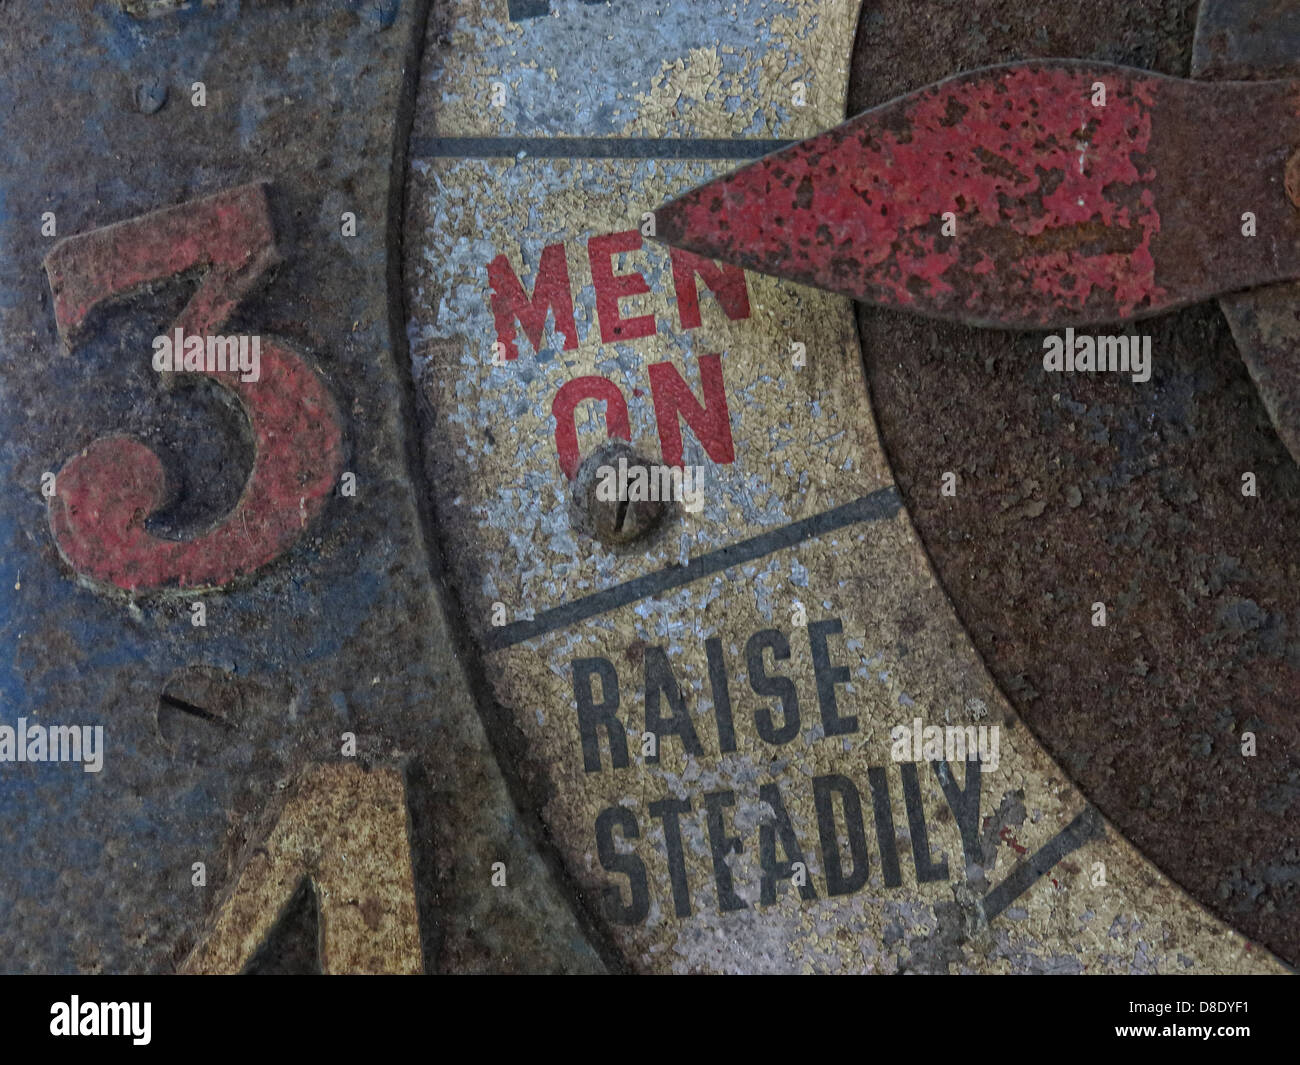 Mining Winding Gear Indicator - Men On Raise Steadily - Stock Image